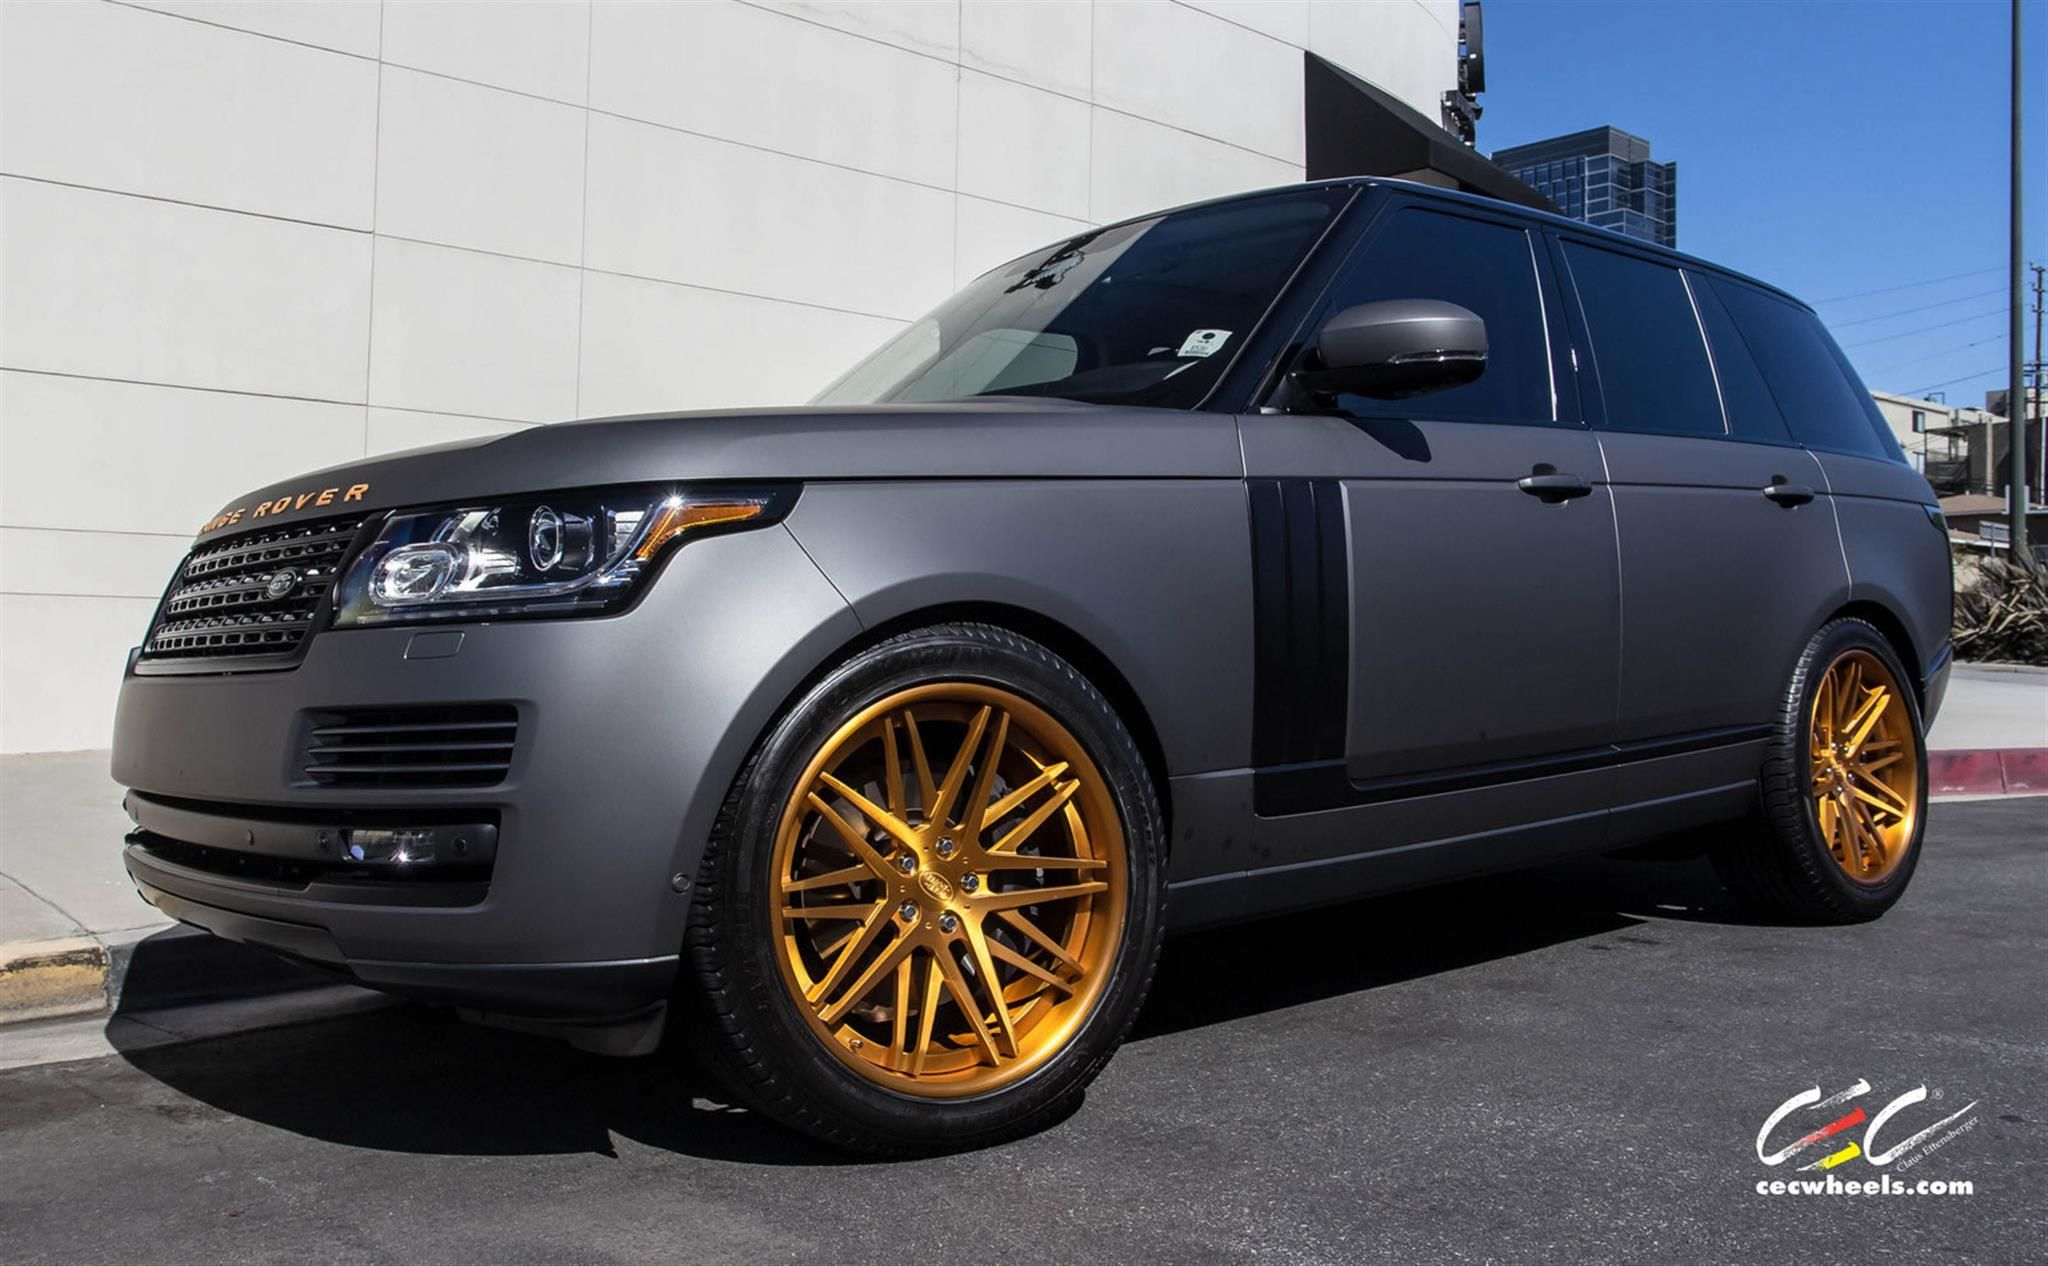 Range Rover Supercharged by CEC in Los Angeles CA to view